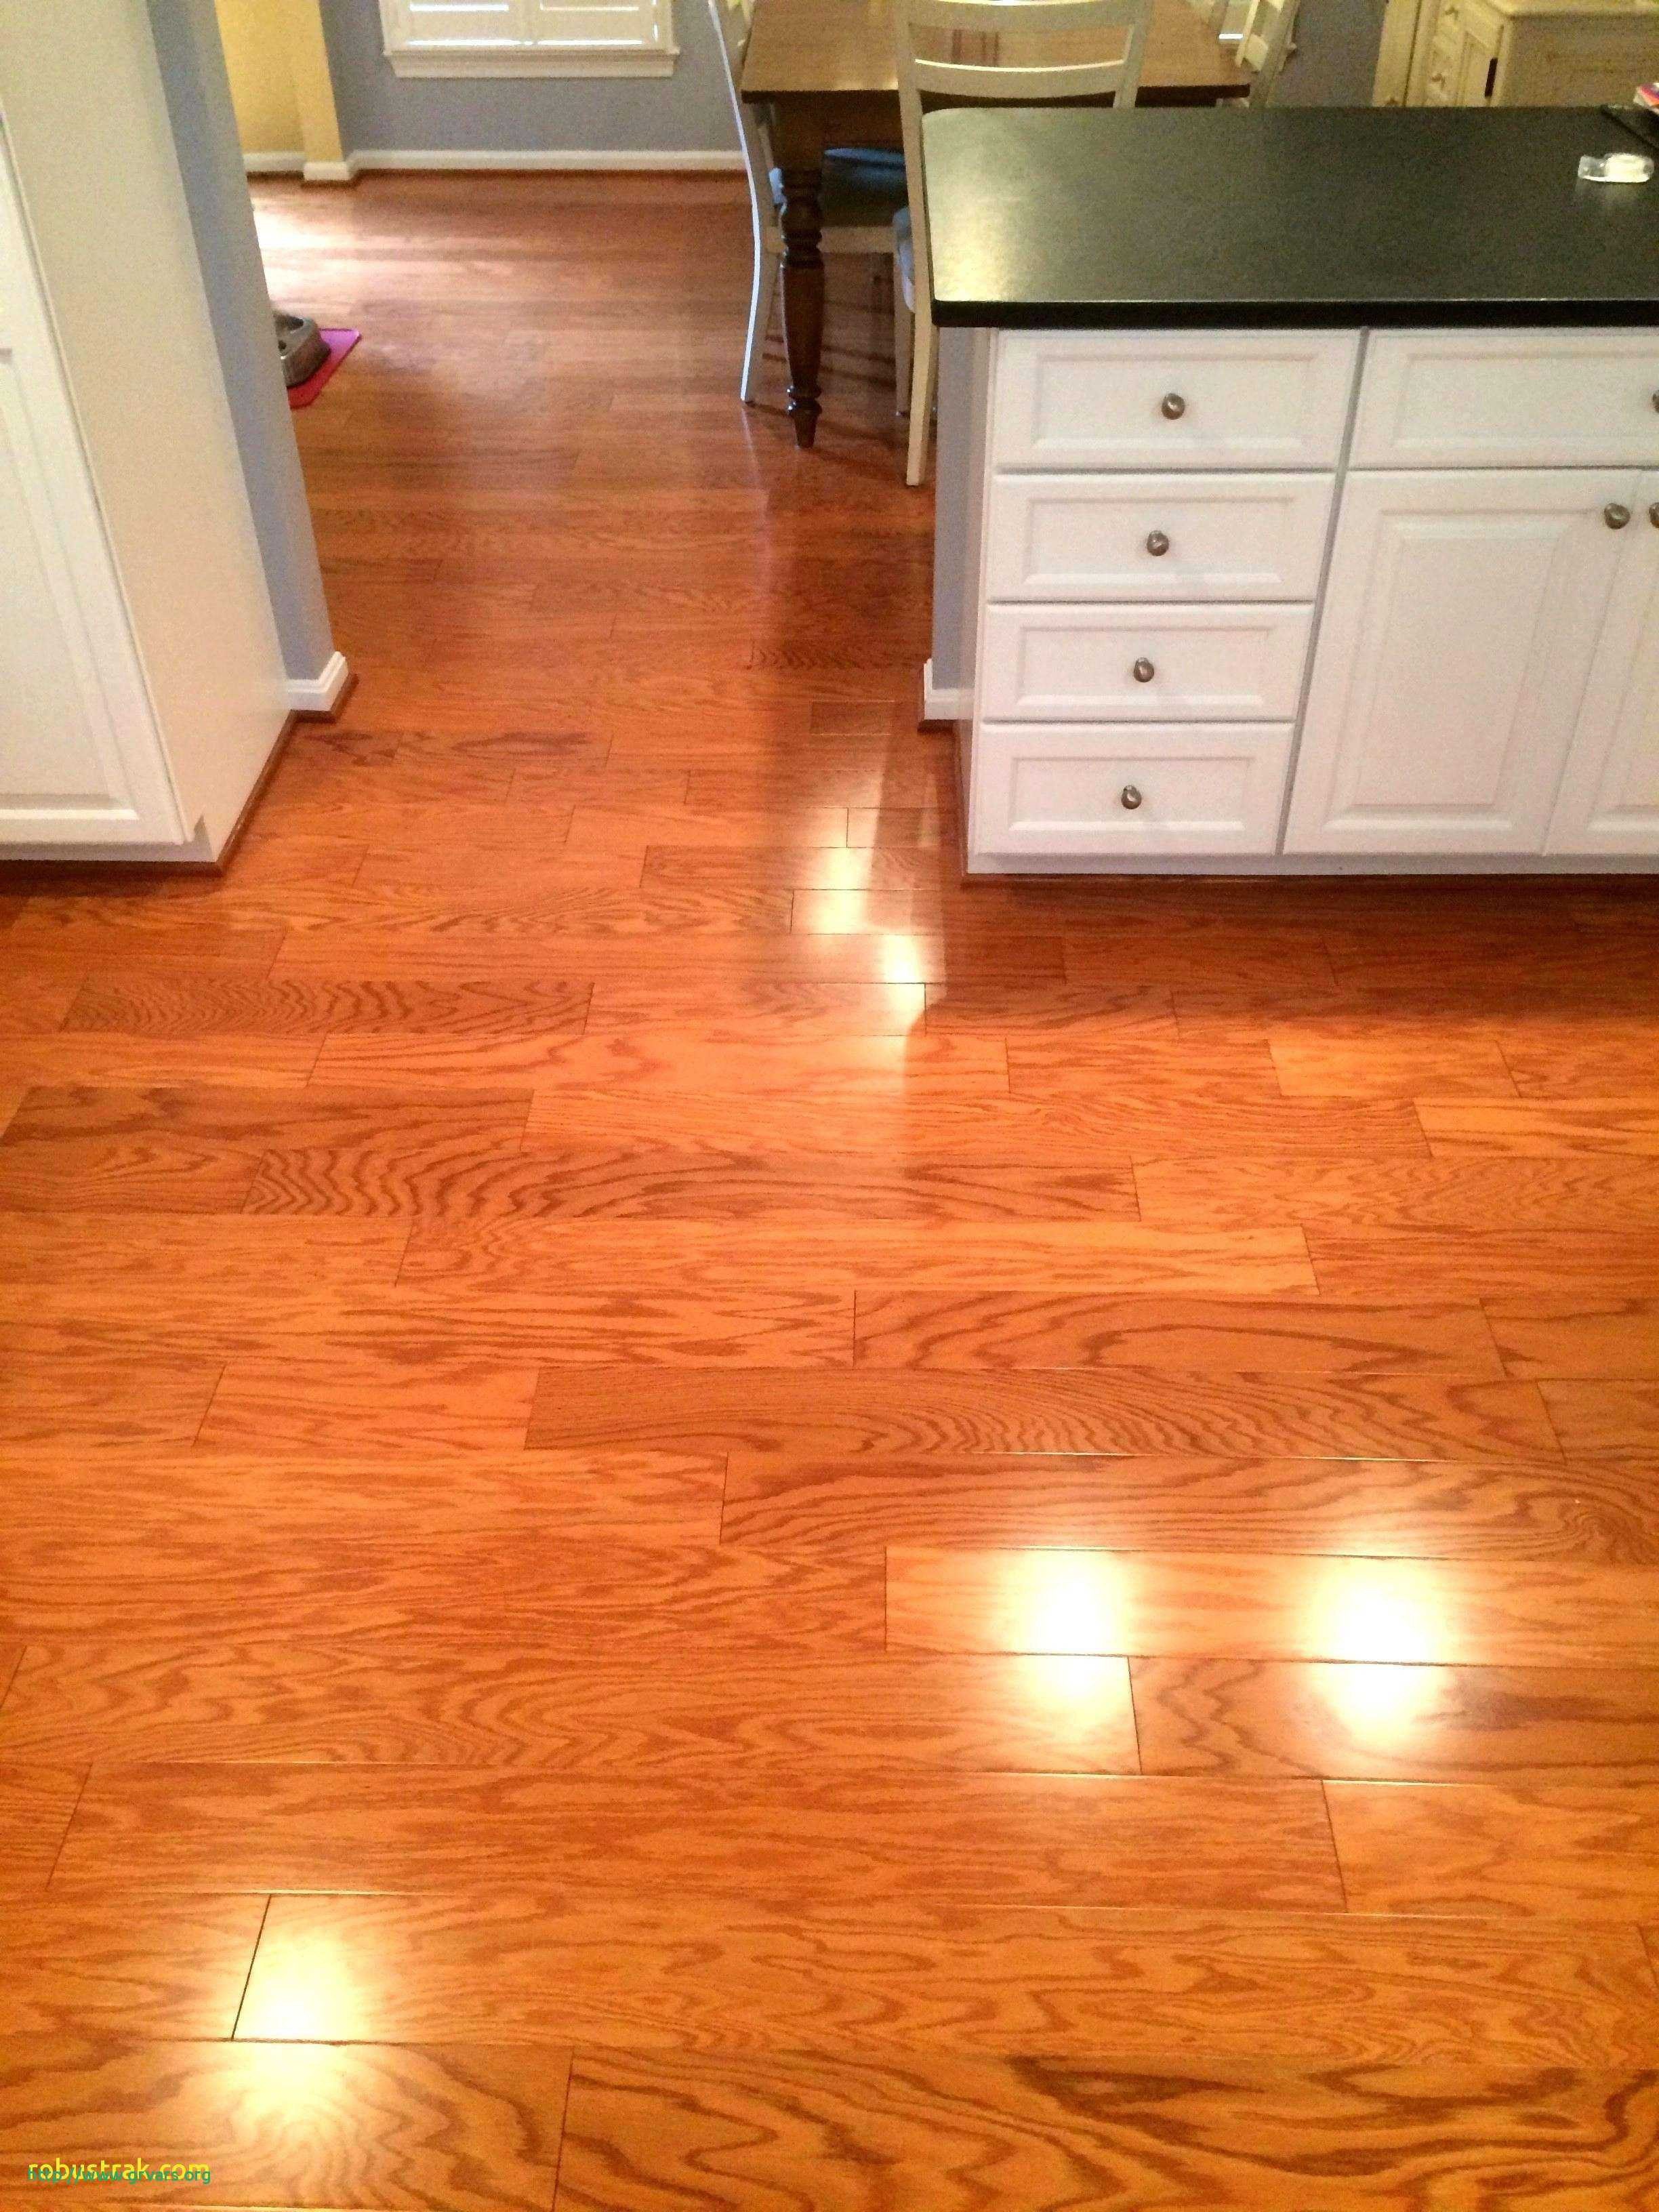 how to install floating hardwood floors yourself of 25 beau fore wood floors ideas blog within hardwood floors in the kitchen fresh where to buy hardwood flooring inspirational 0d grace place barnegat